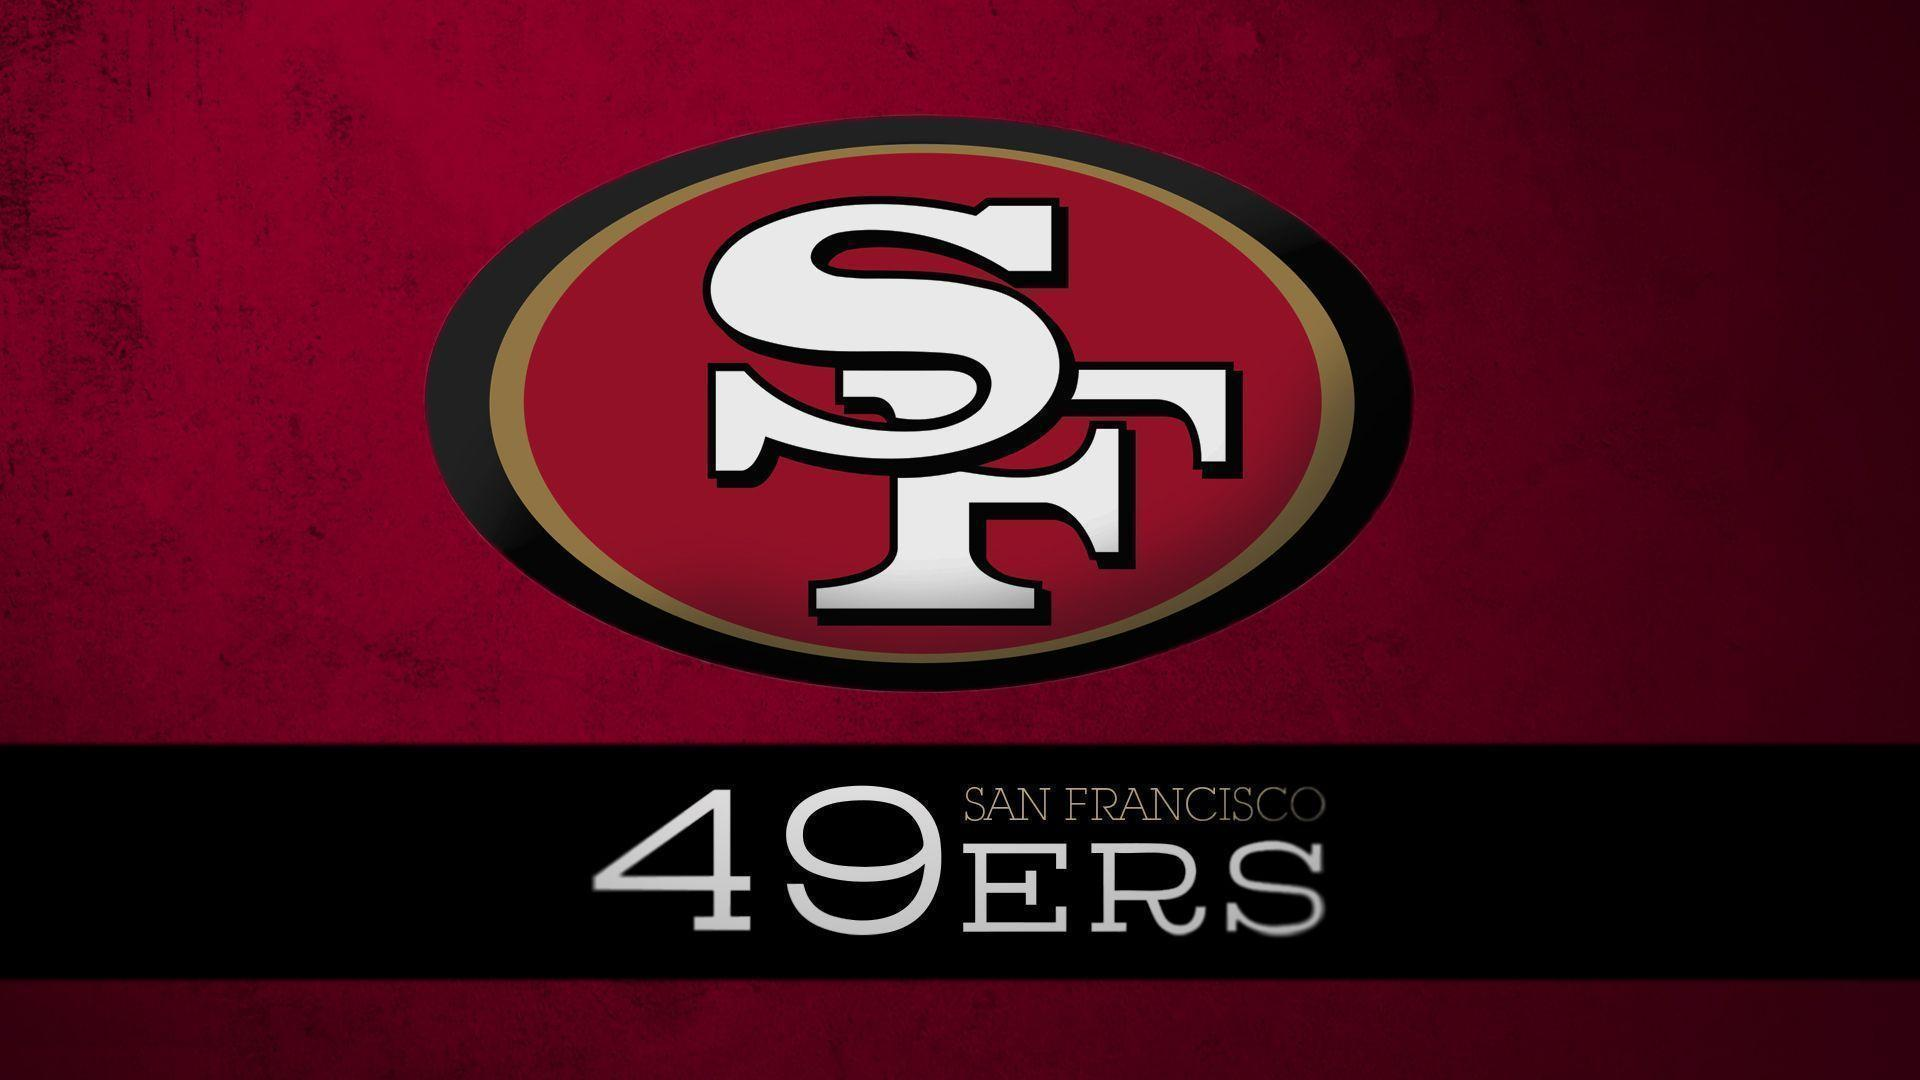 49ers logo wallpapers wallpaper cave